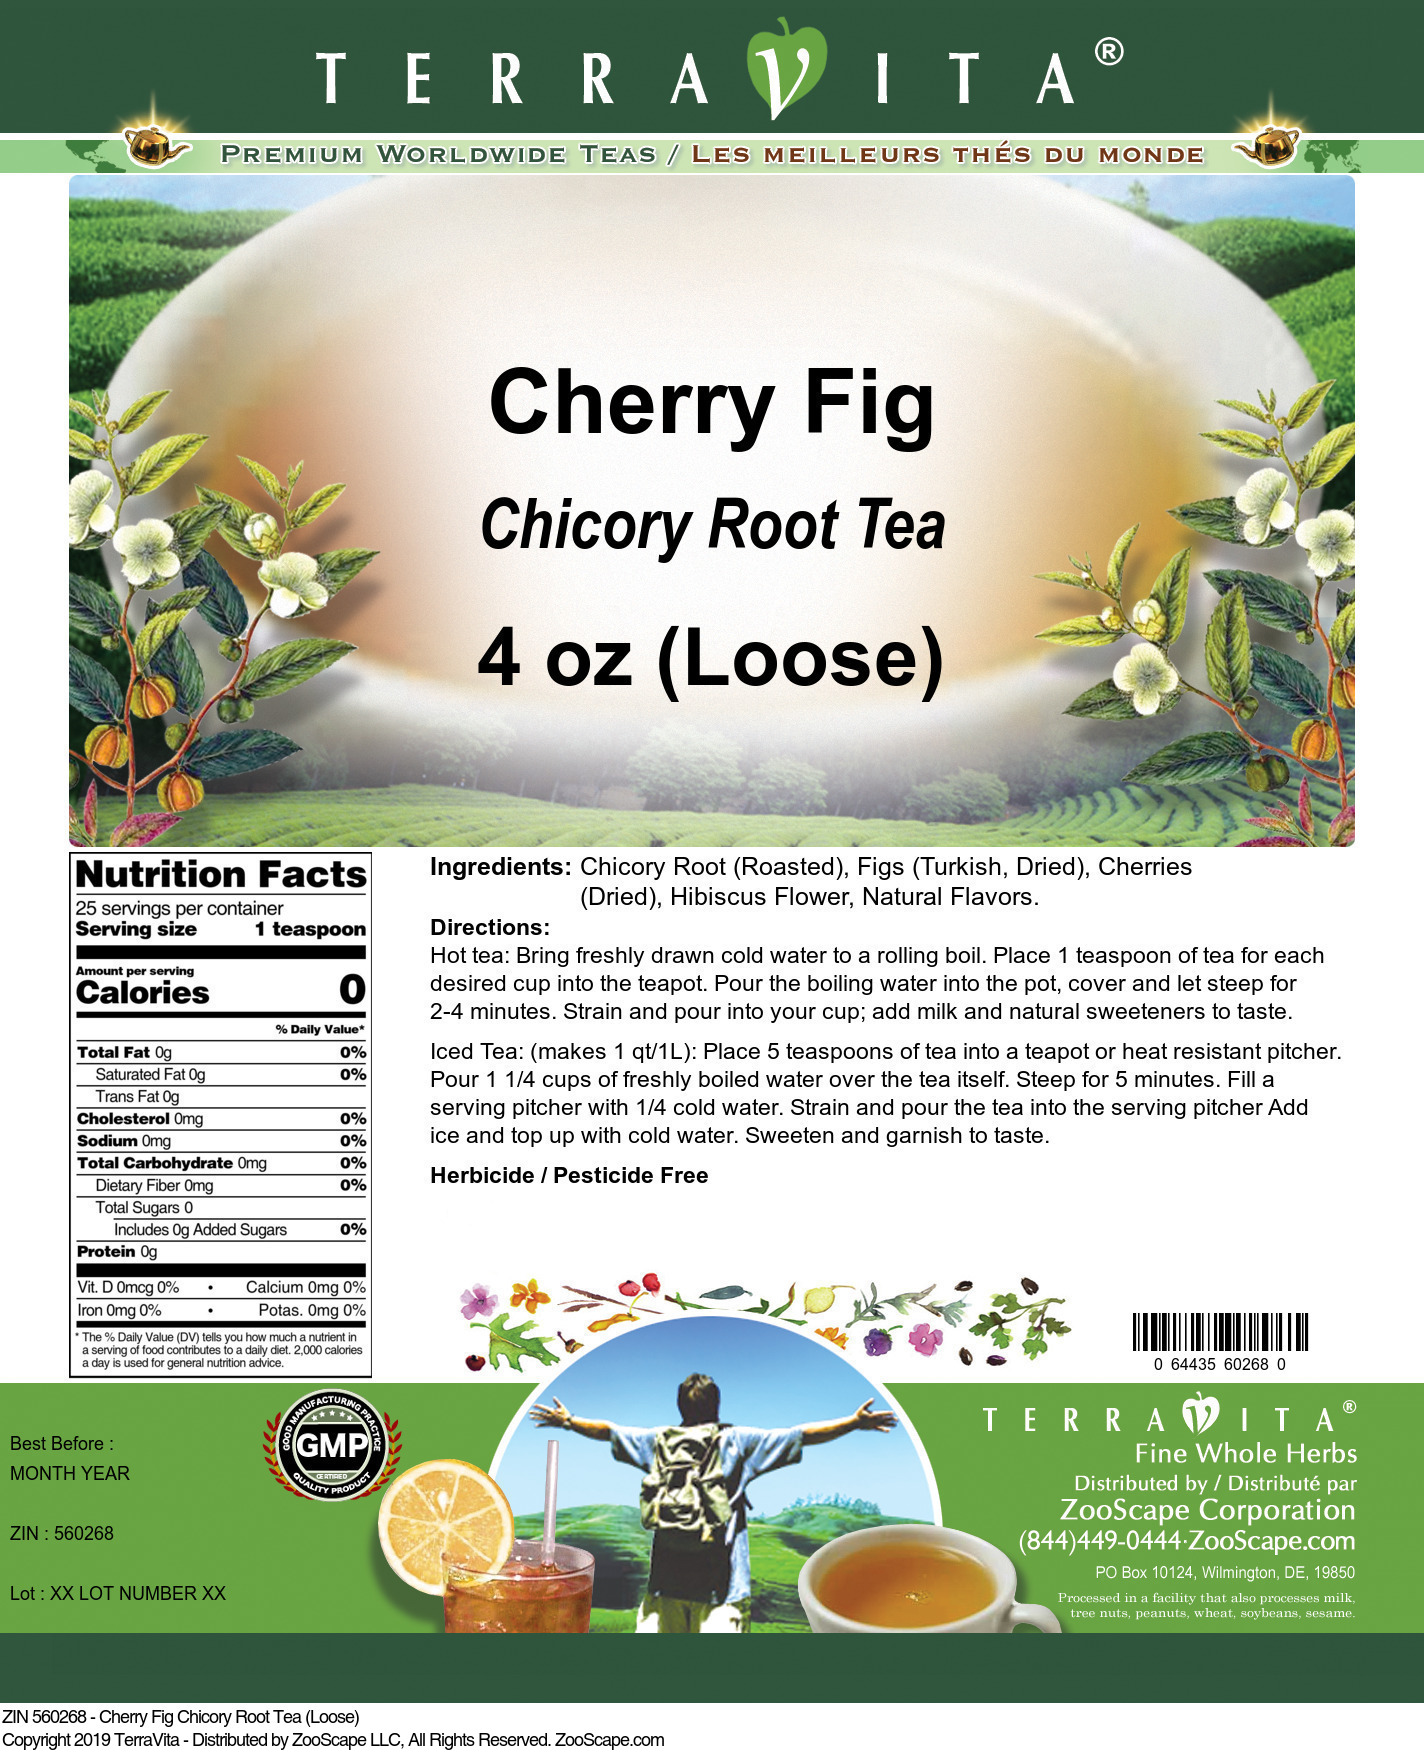 Cherry Fig Chicory Root Tea (Loose)